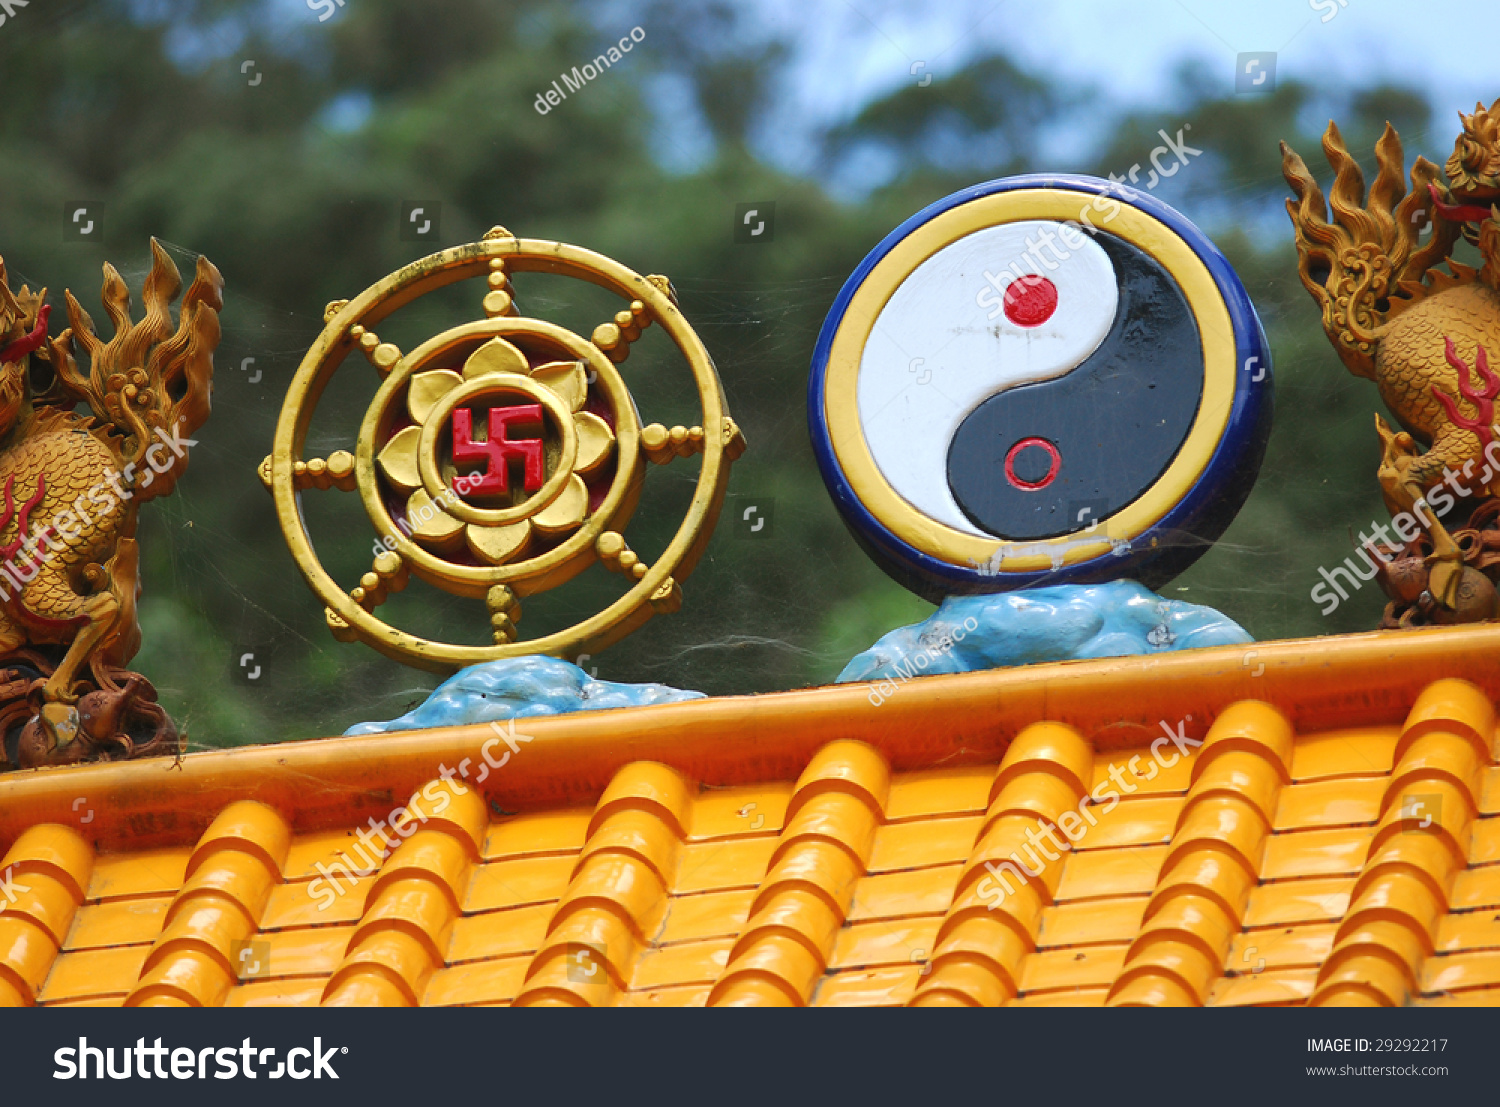 Taoism Symbols Dragon: Symbols Of Both Taoism And Buddhism On An Archway Stock